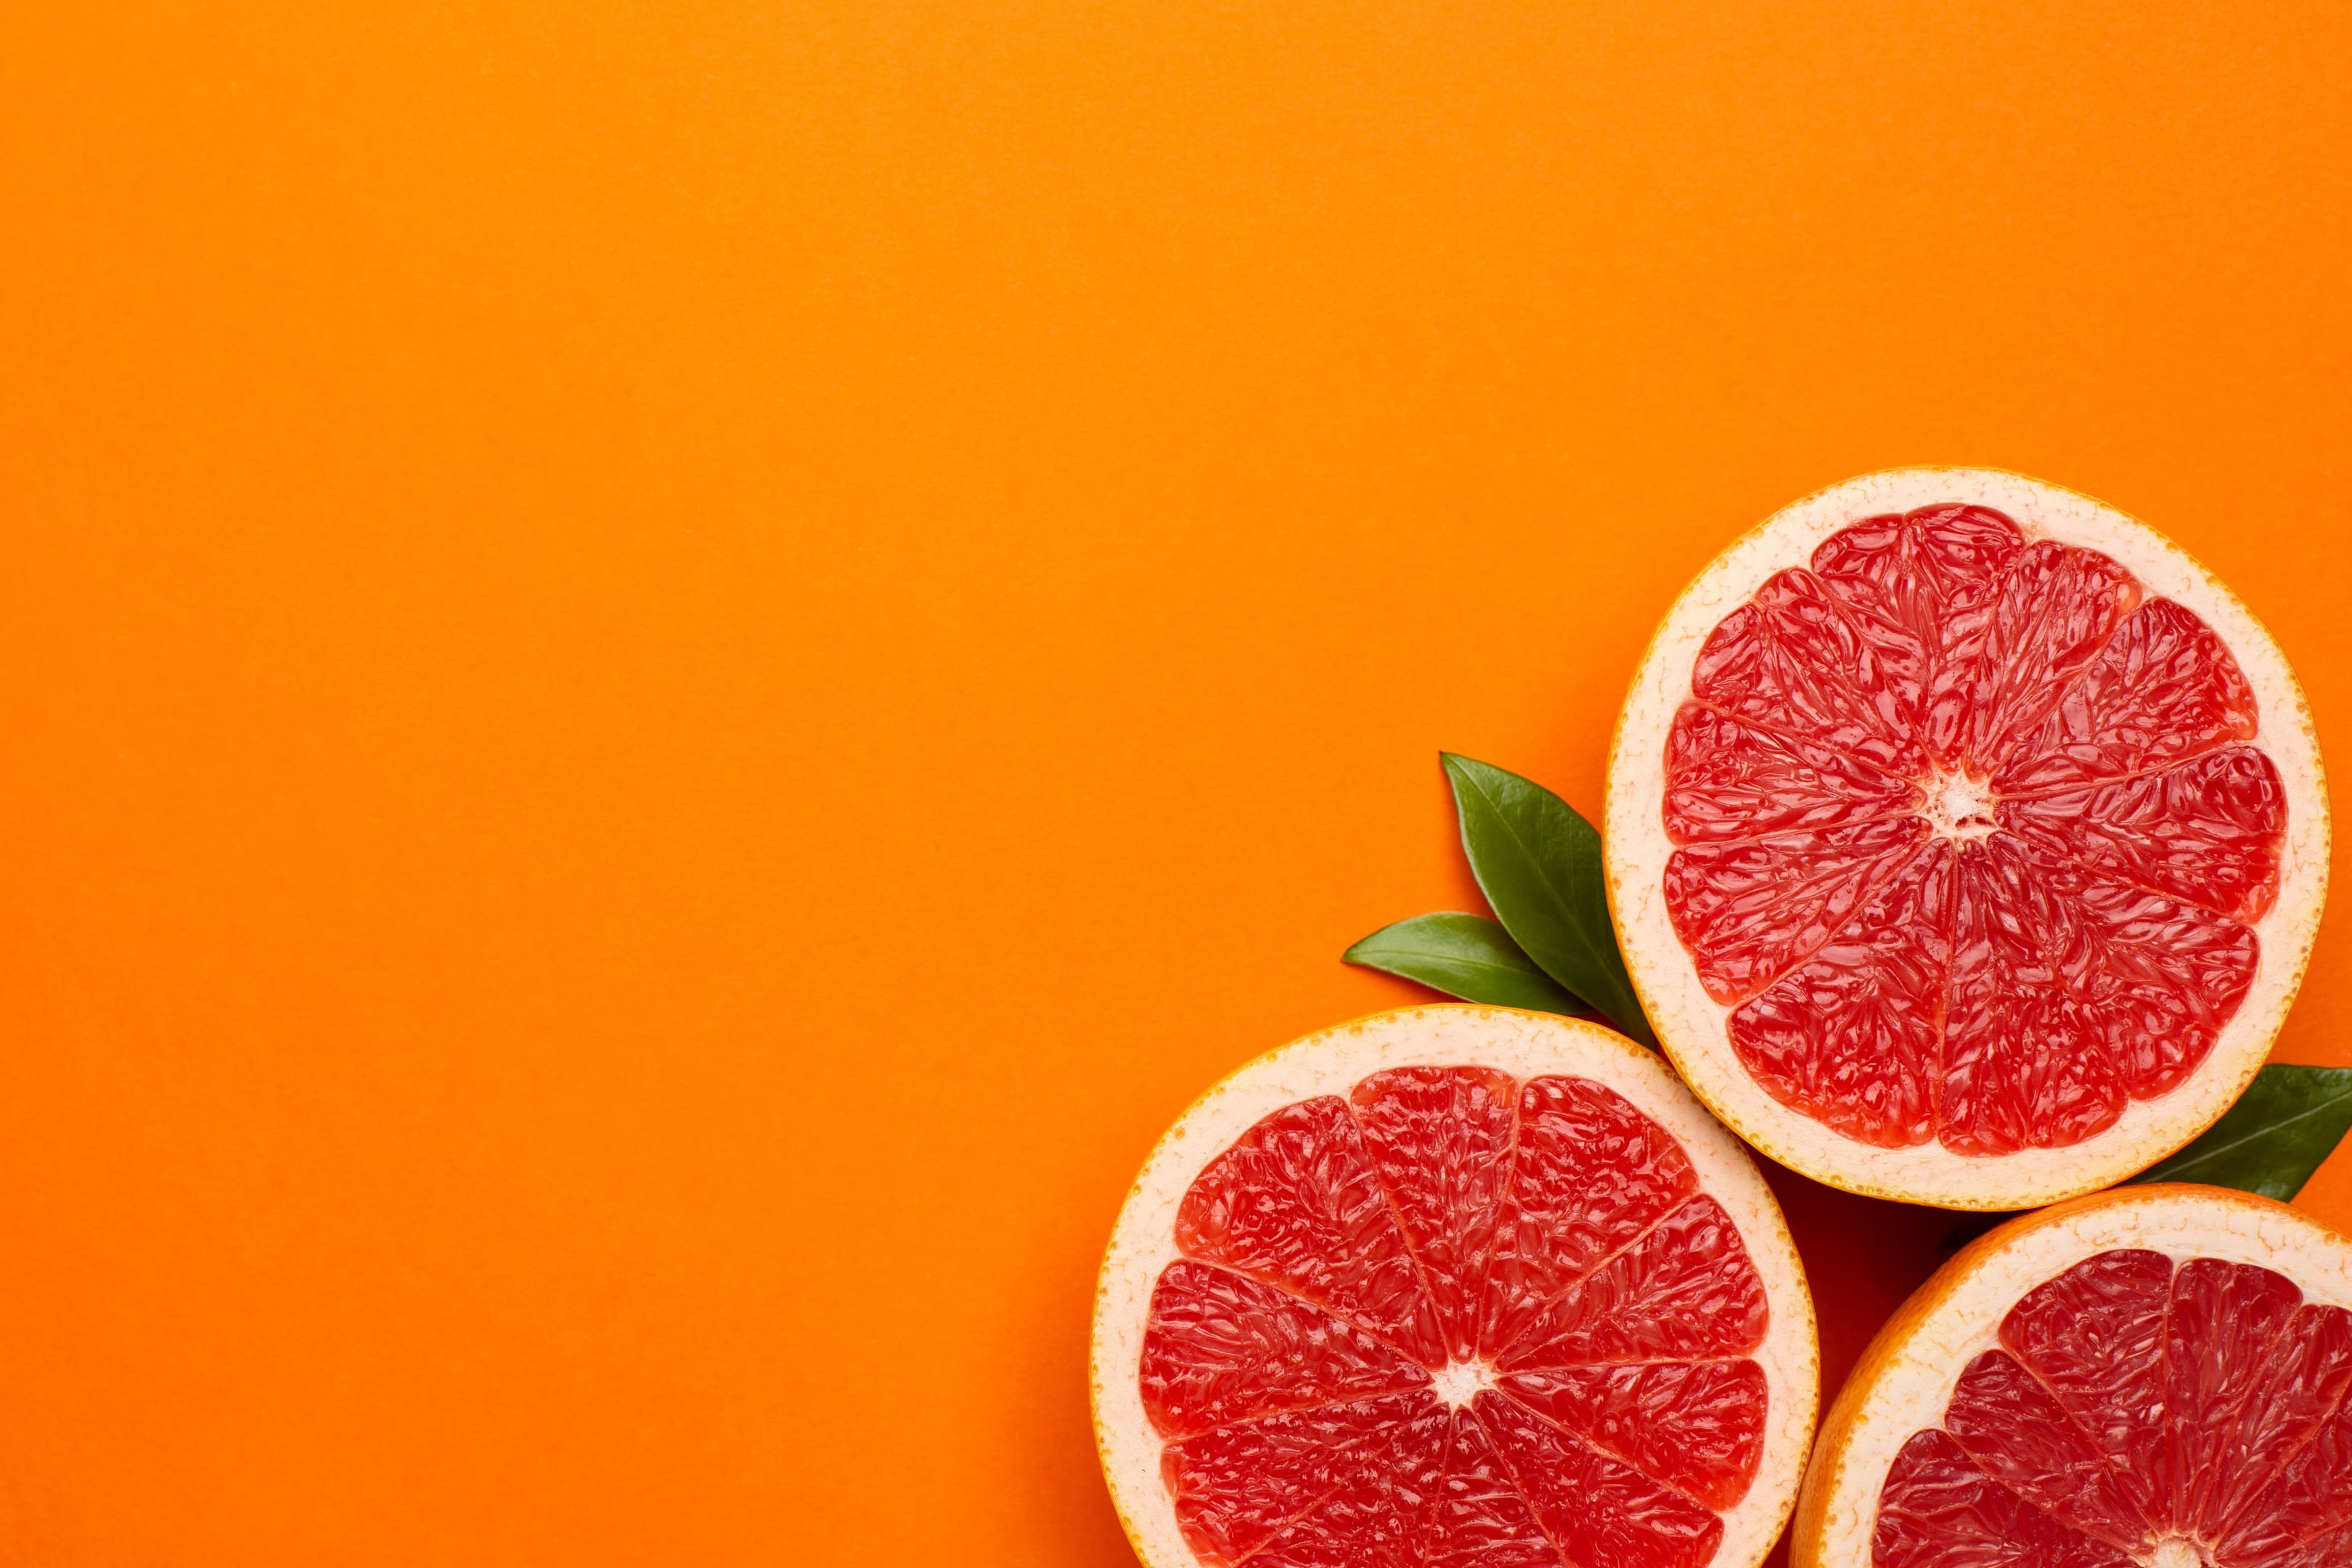 Grapefruits on orange background